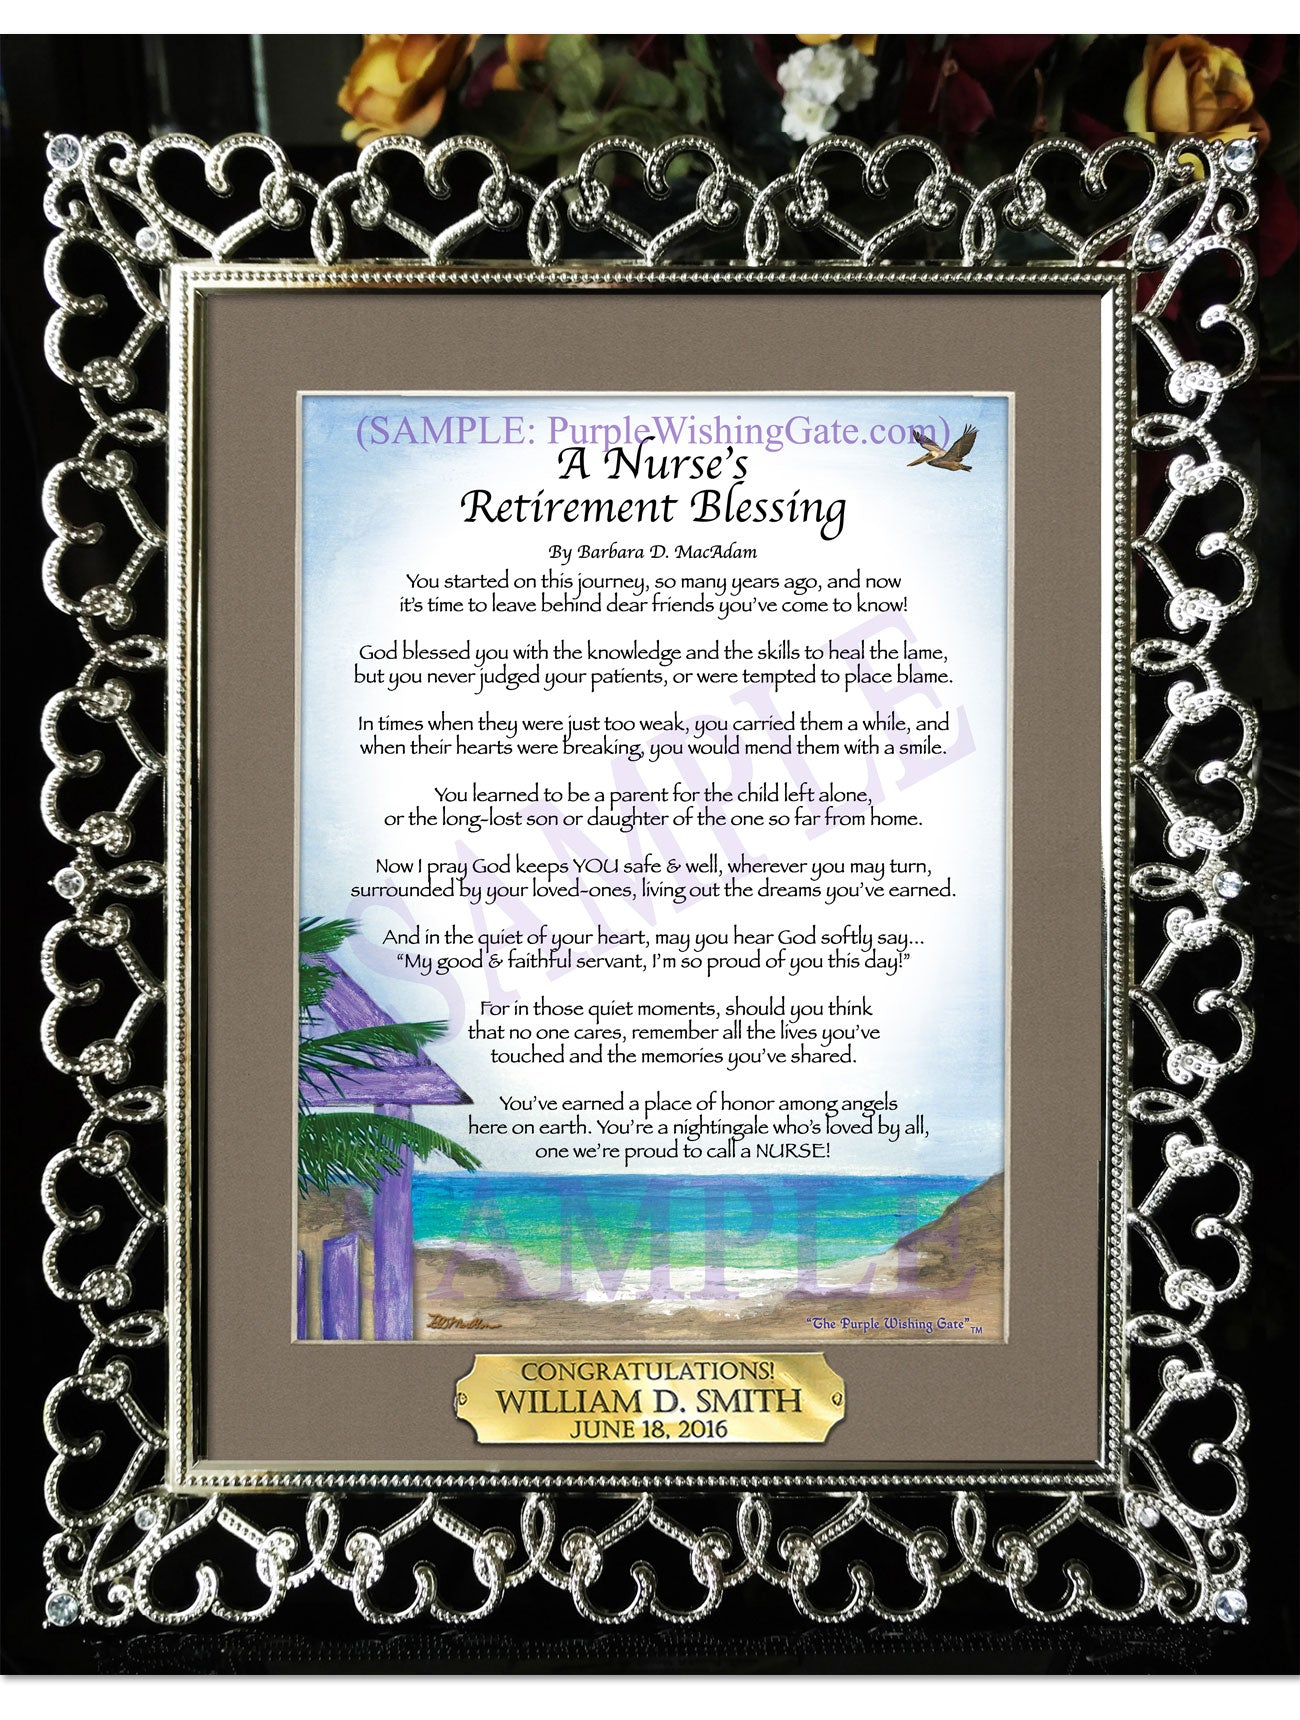 A Nurse's Retirement Blessing - Retirement Gift - PurpleWishingGate.com